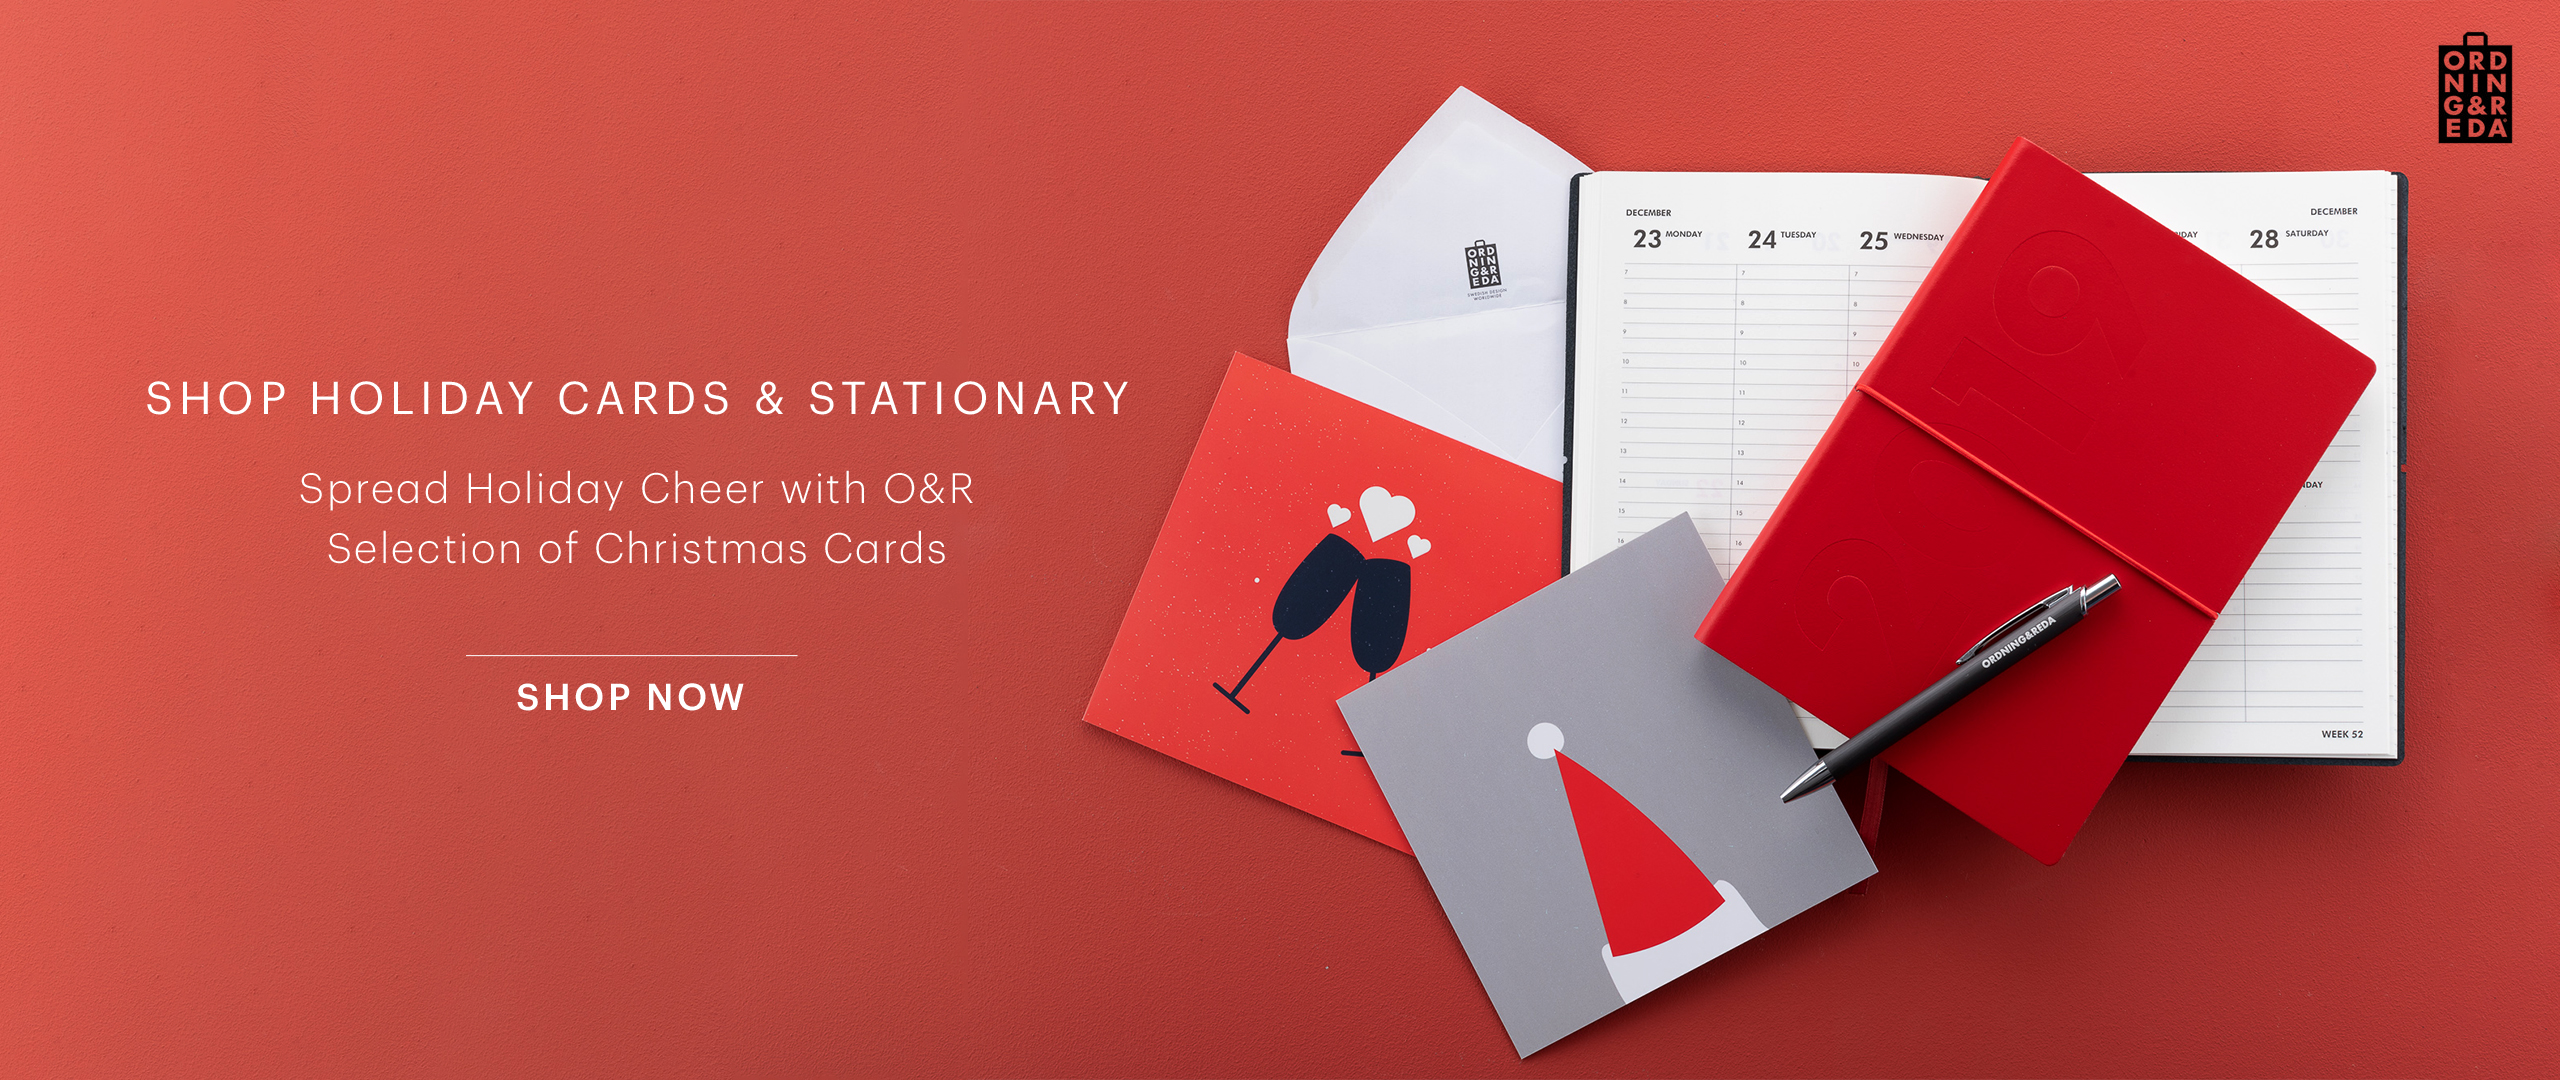 [OR] - BEU - [EN] - Holiday Stationary